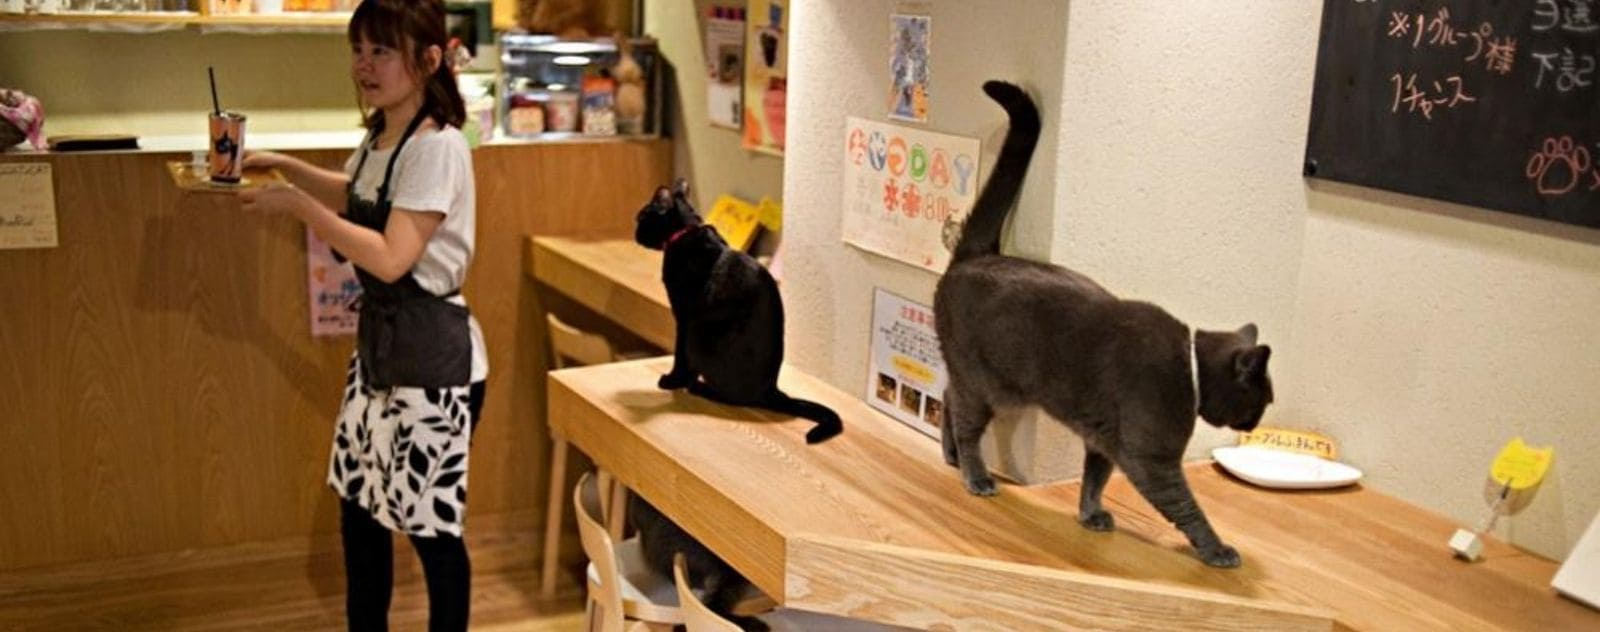 bar café chat japon